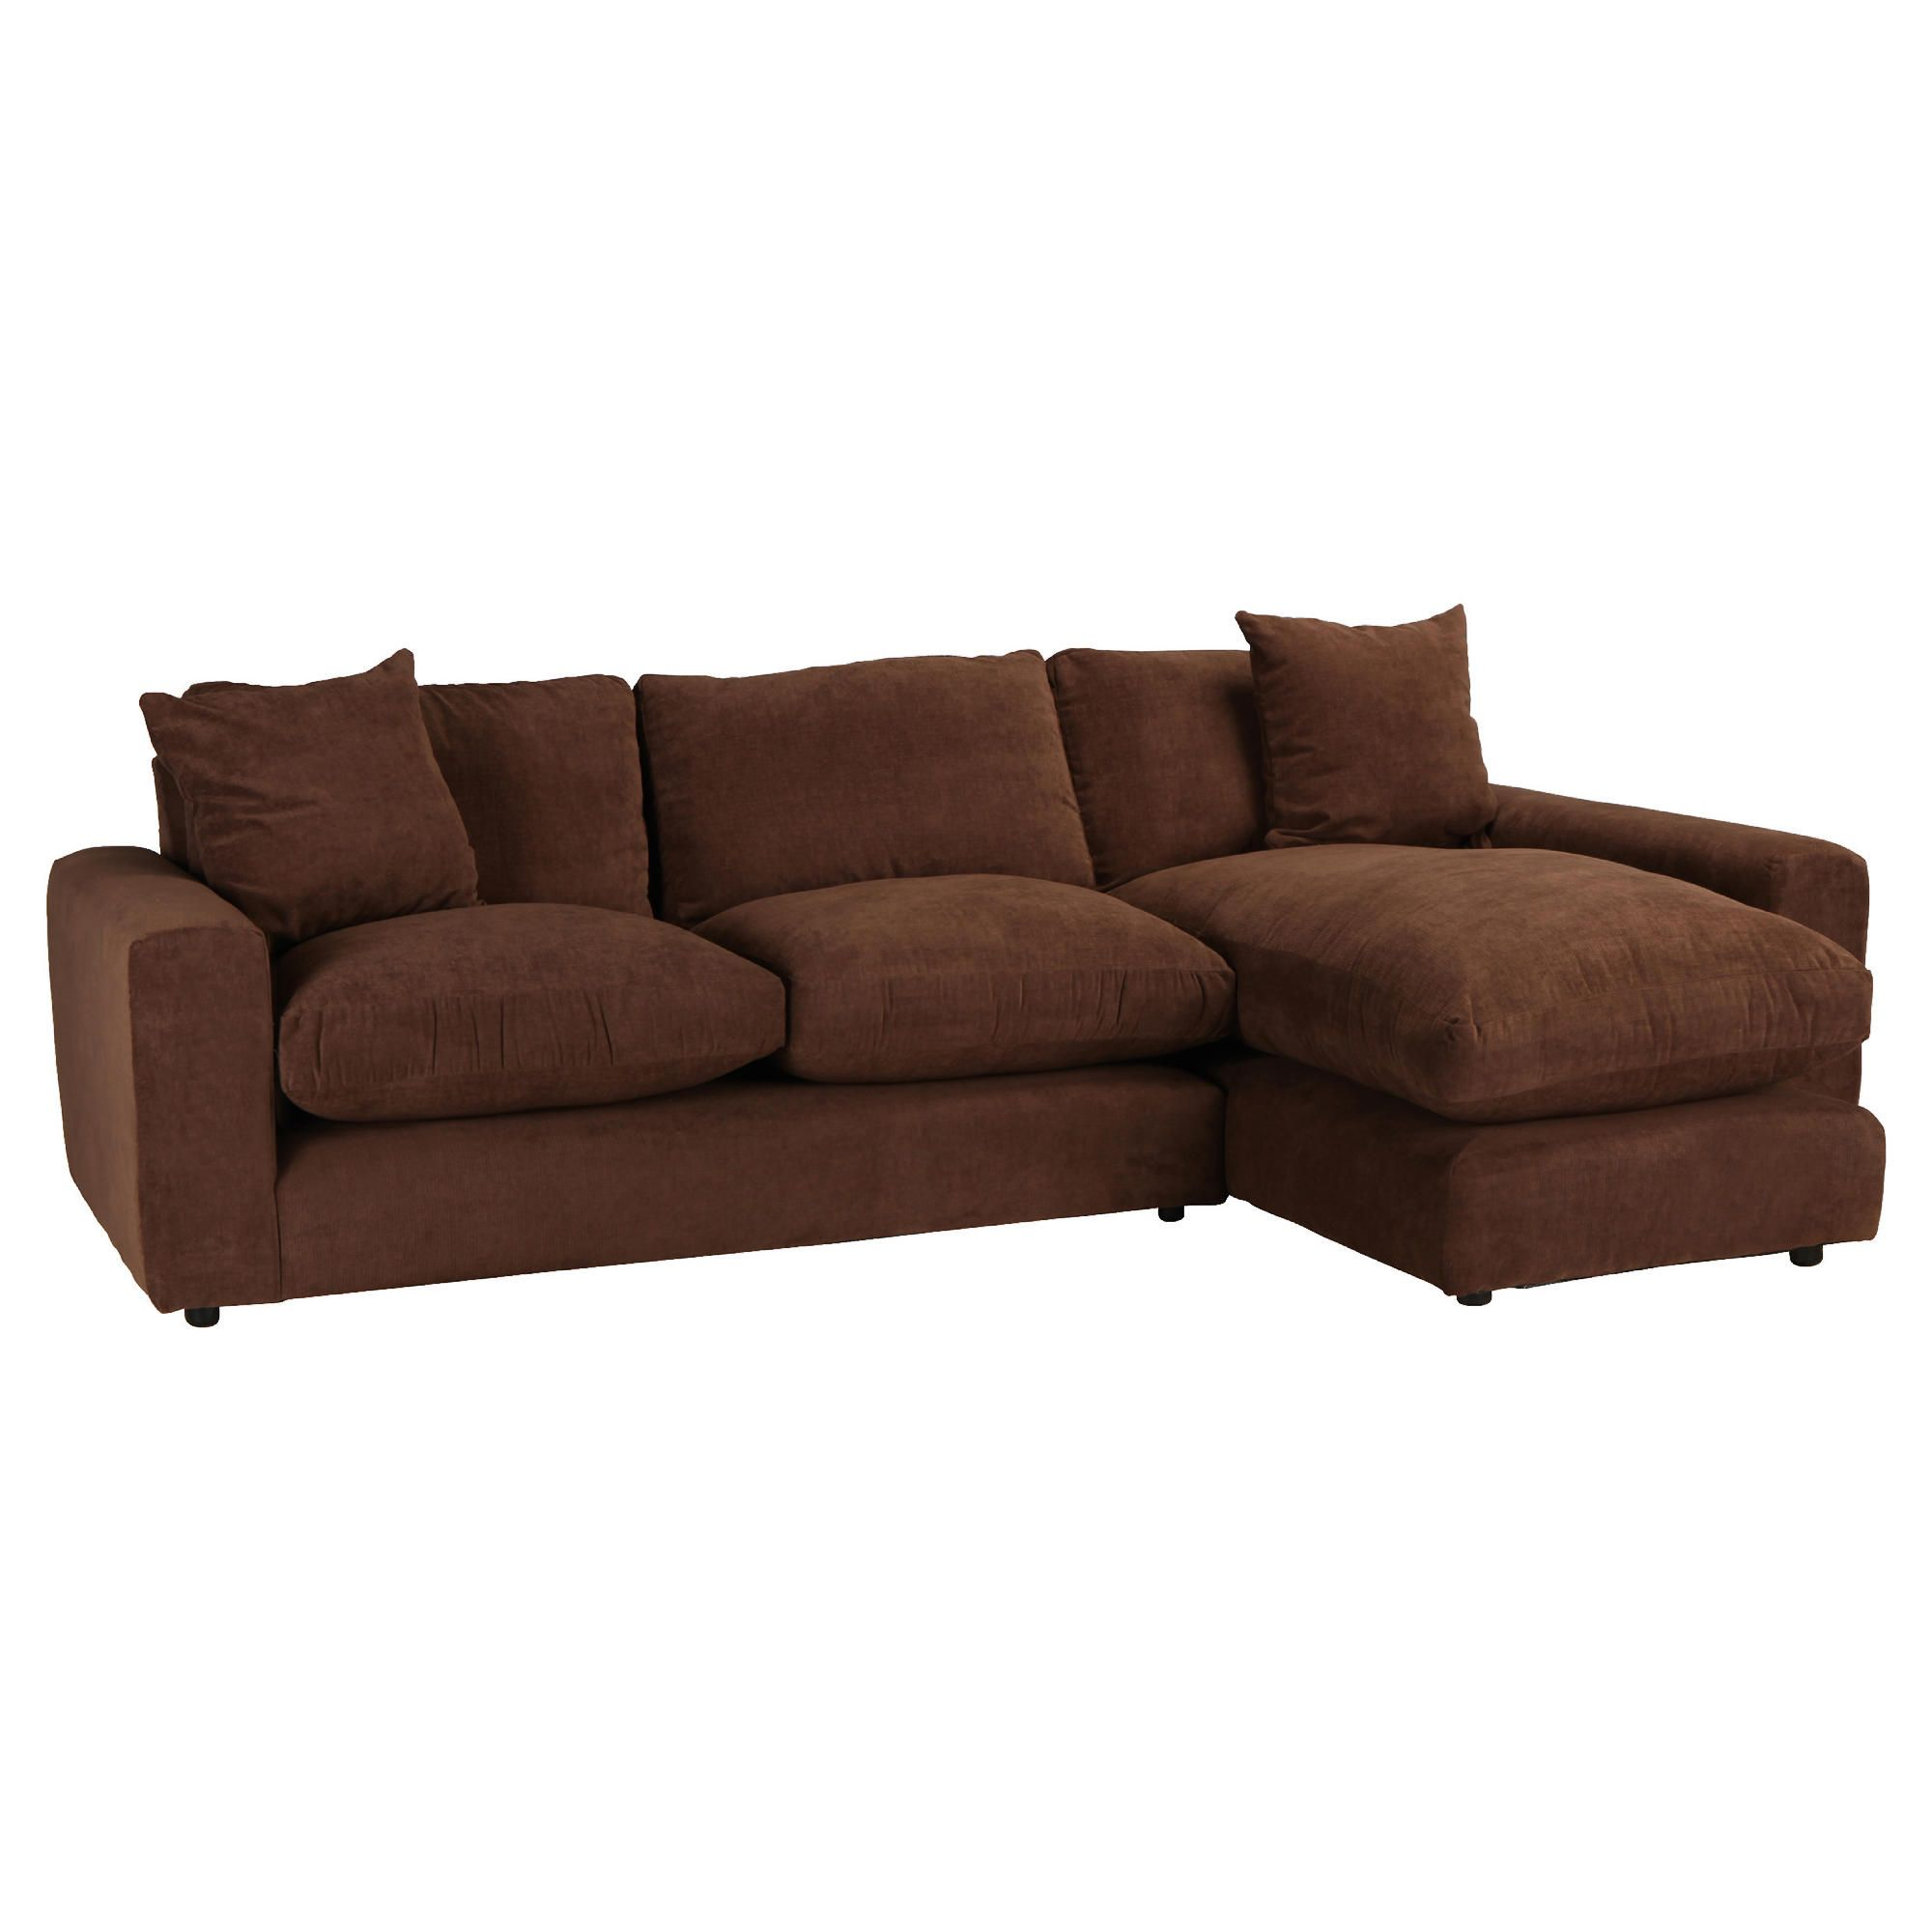 Valentino Chaise Sofa Chocolate Right Hand Facing at Tescos Direct